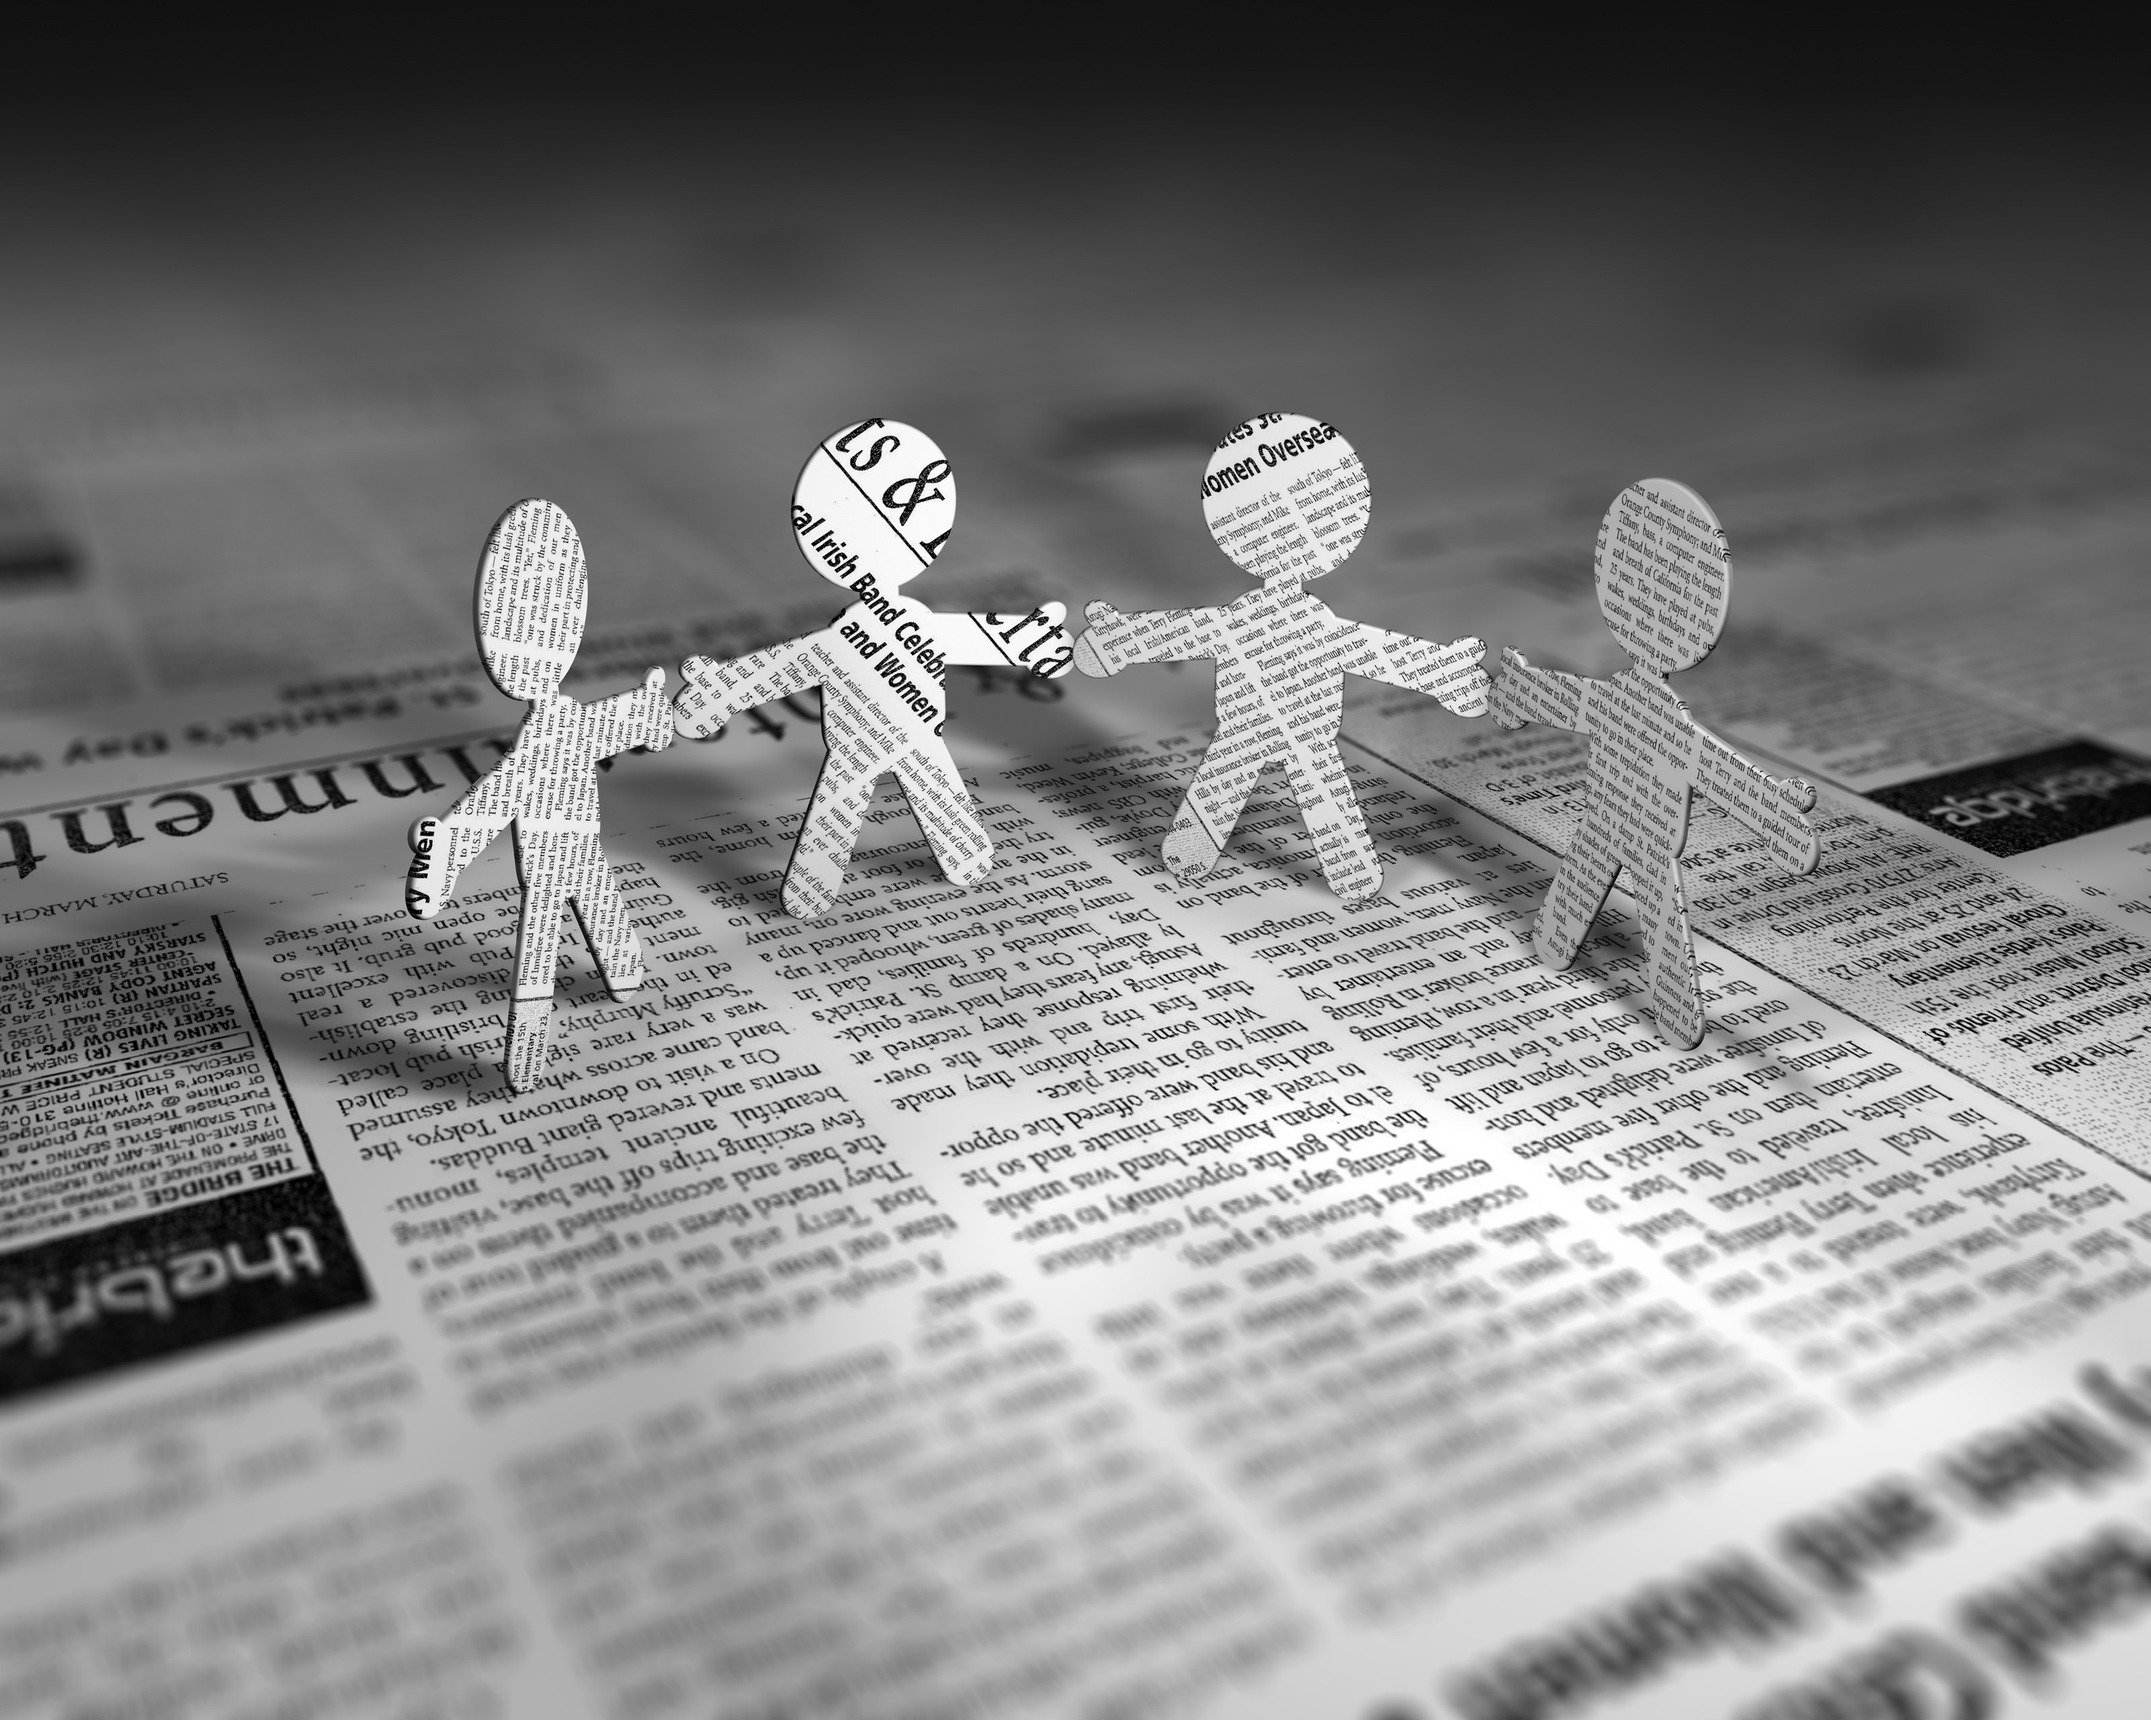 newspaper cutout people holding hands